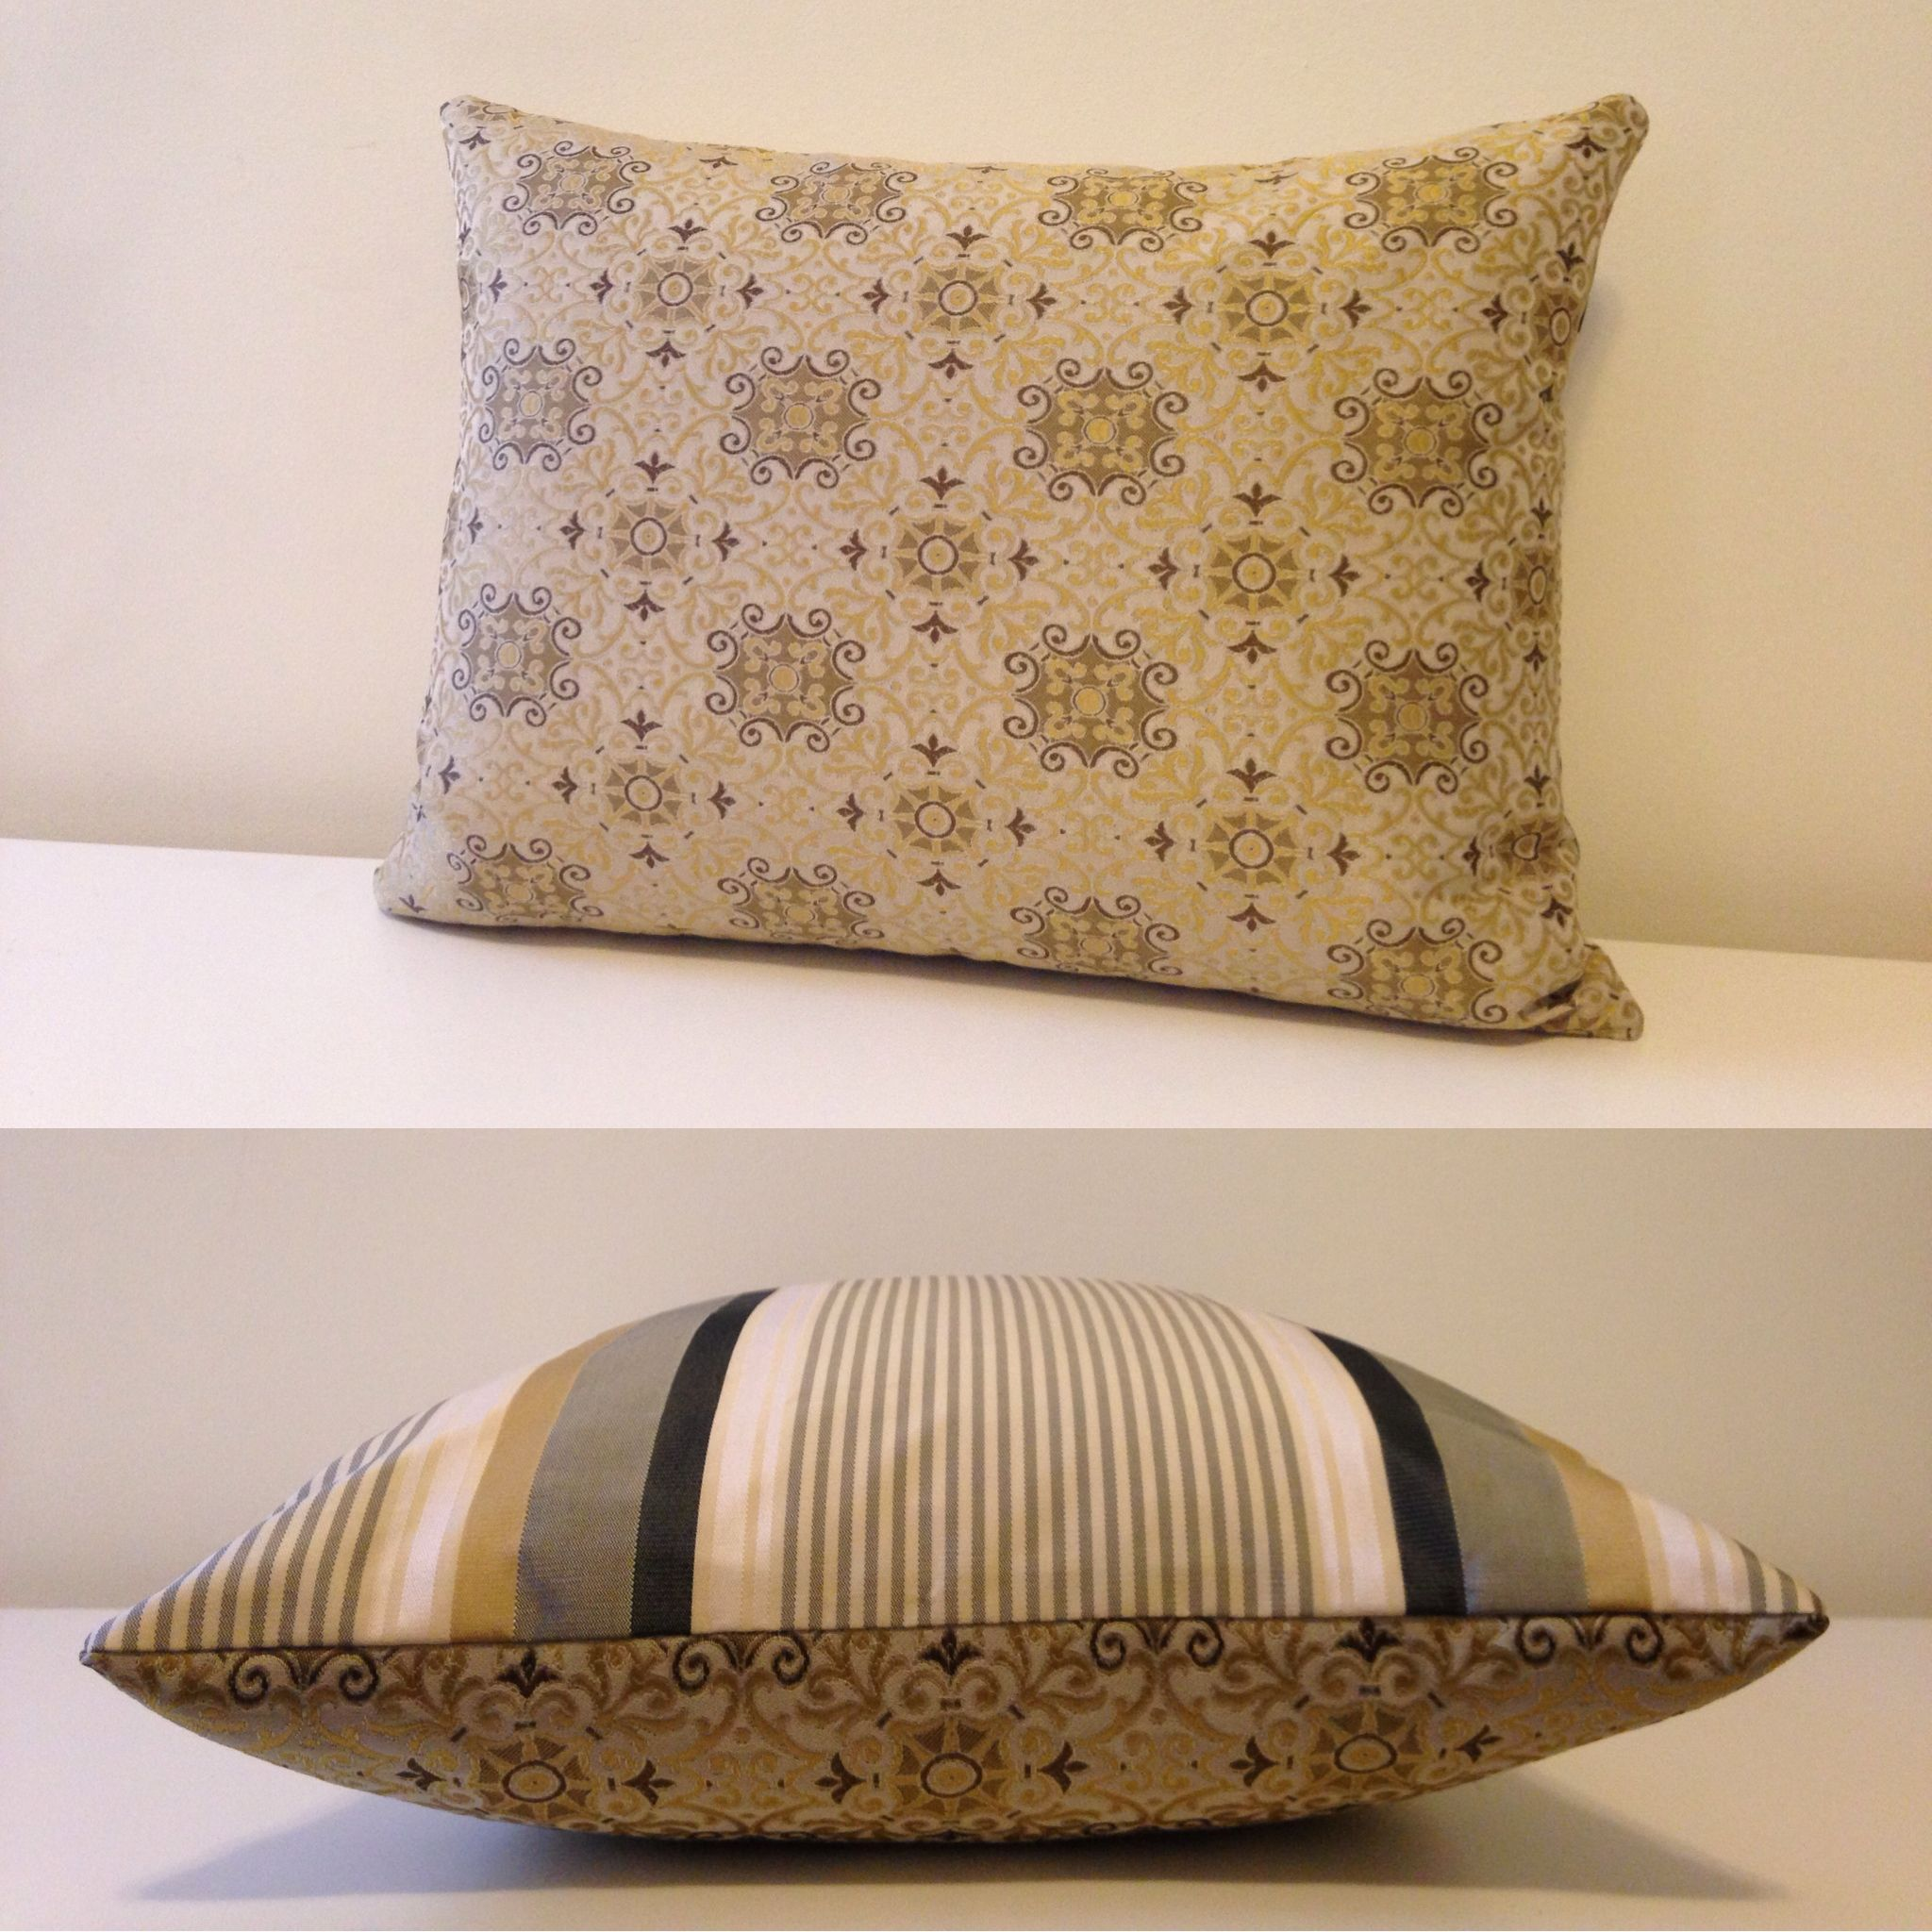 Hand Made One Of A Kind Handmade Decorative Pillow